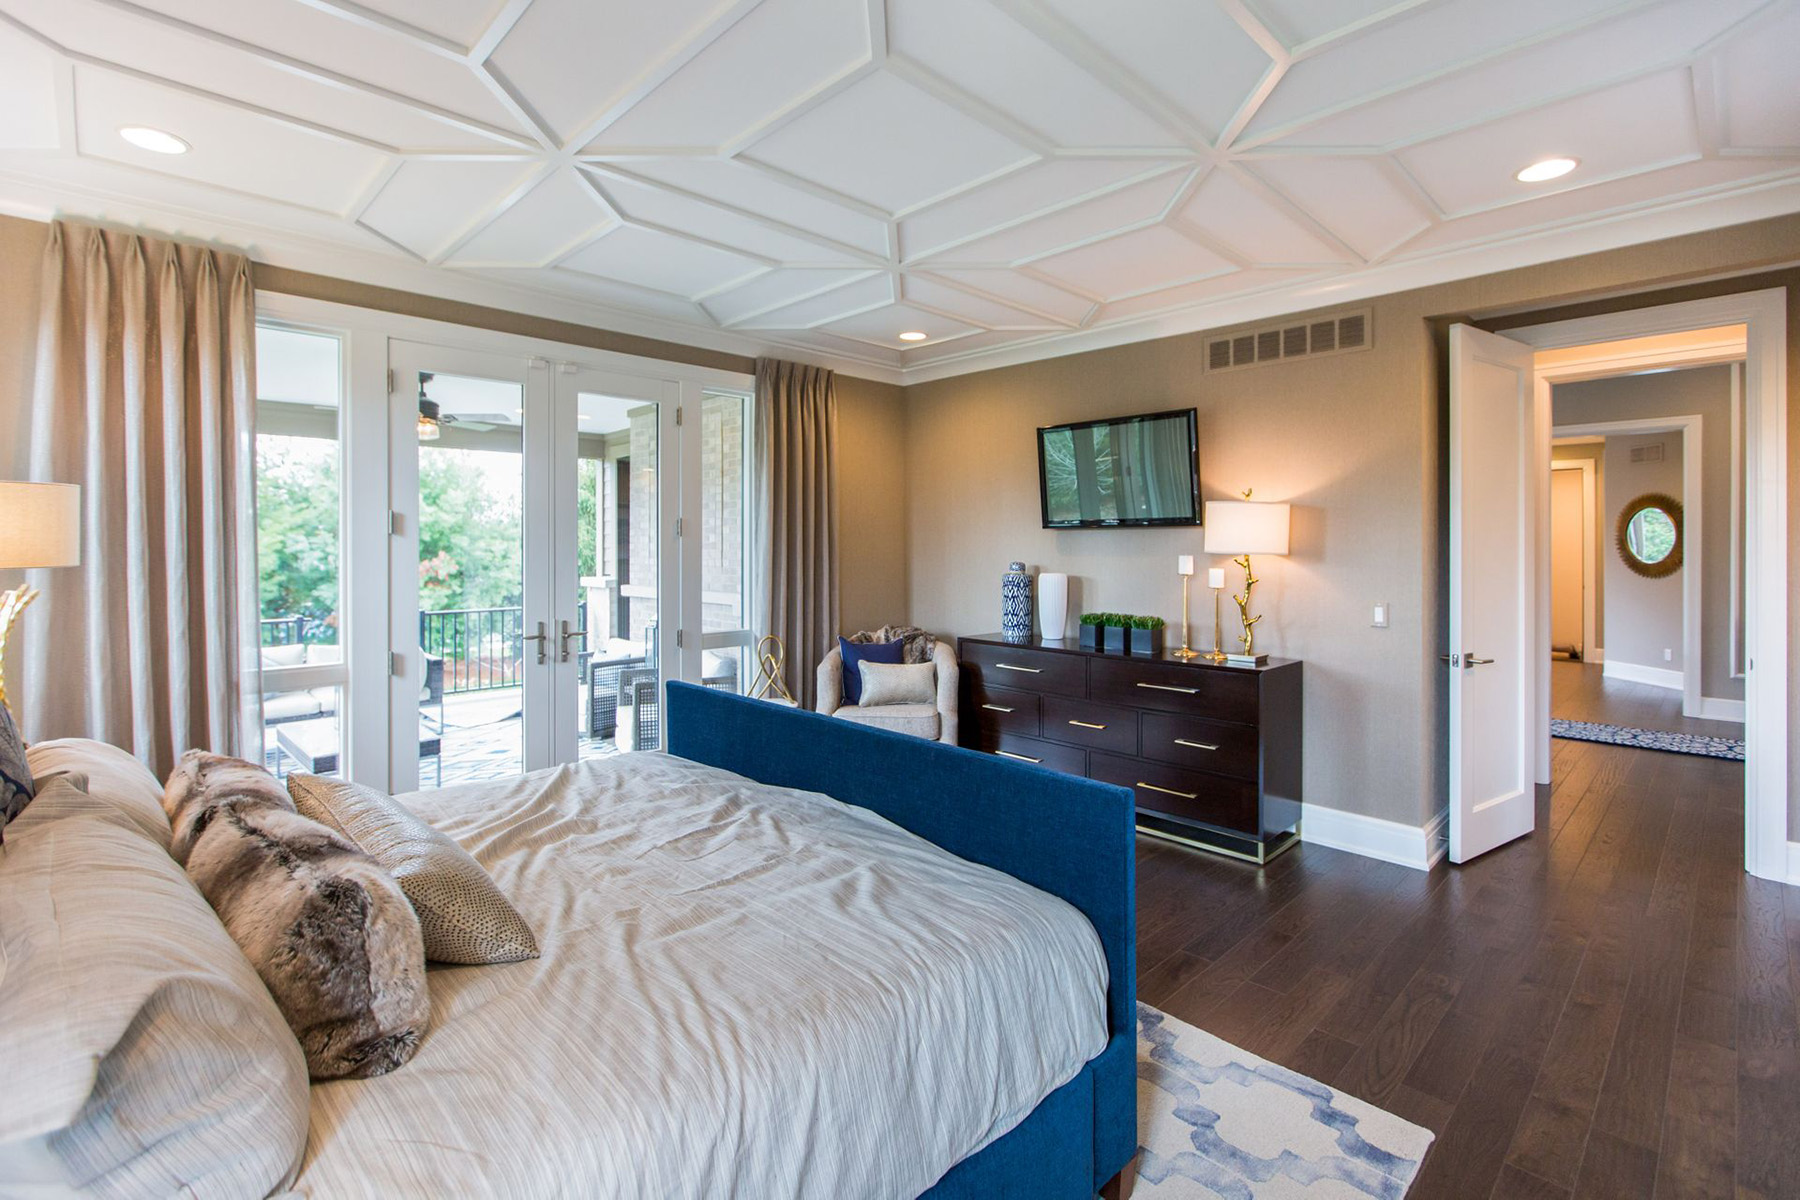 New home in bloomfield hills the kingsley m i homes - House of bedrooms bloomfield hills mi ...